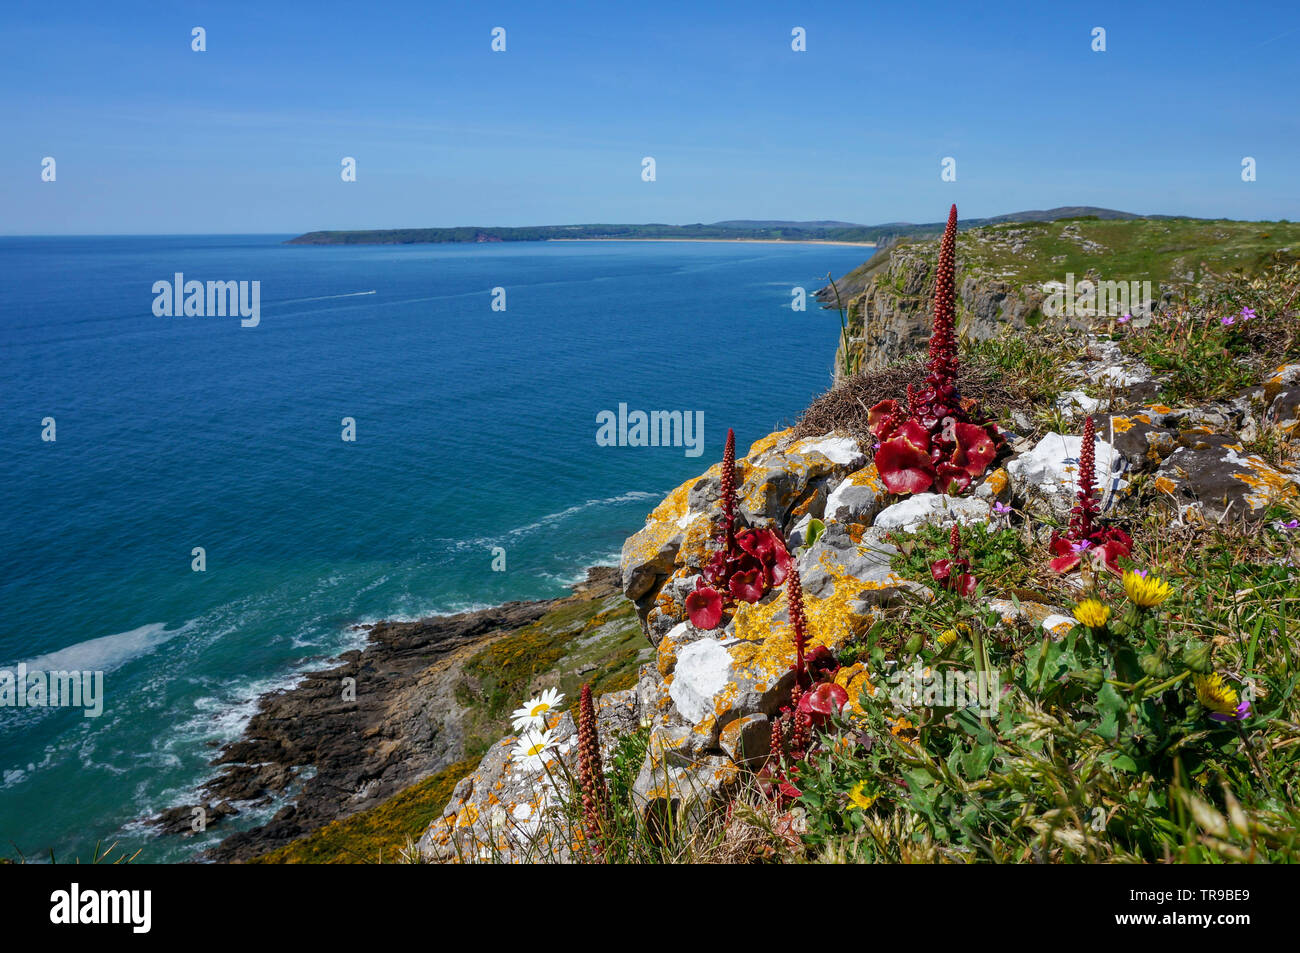 A seascape with an unusual  red plant in the foreground, Wales - Stock Image